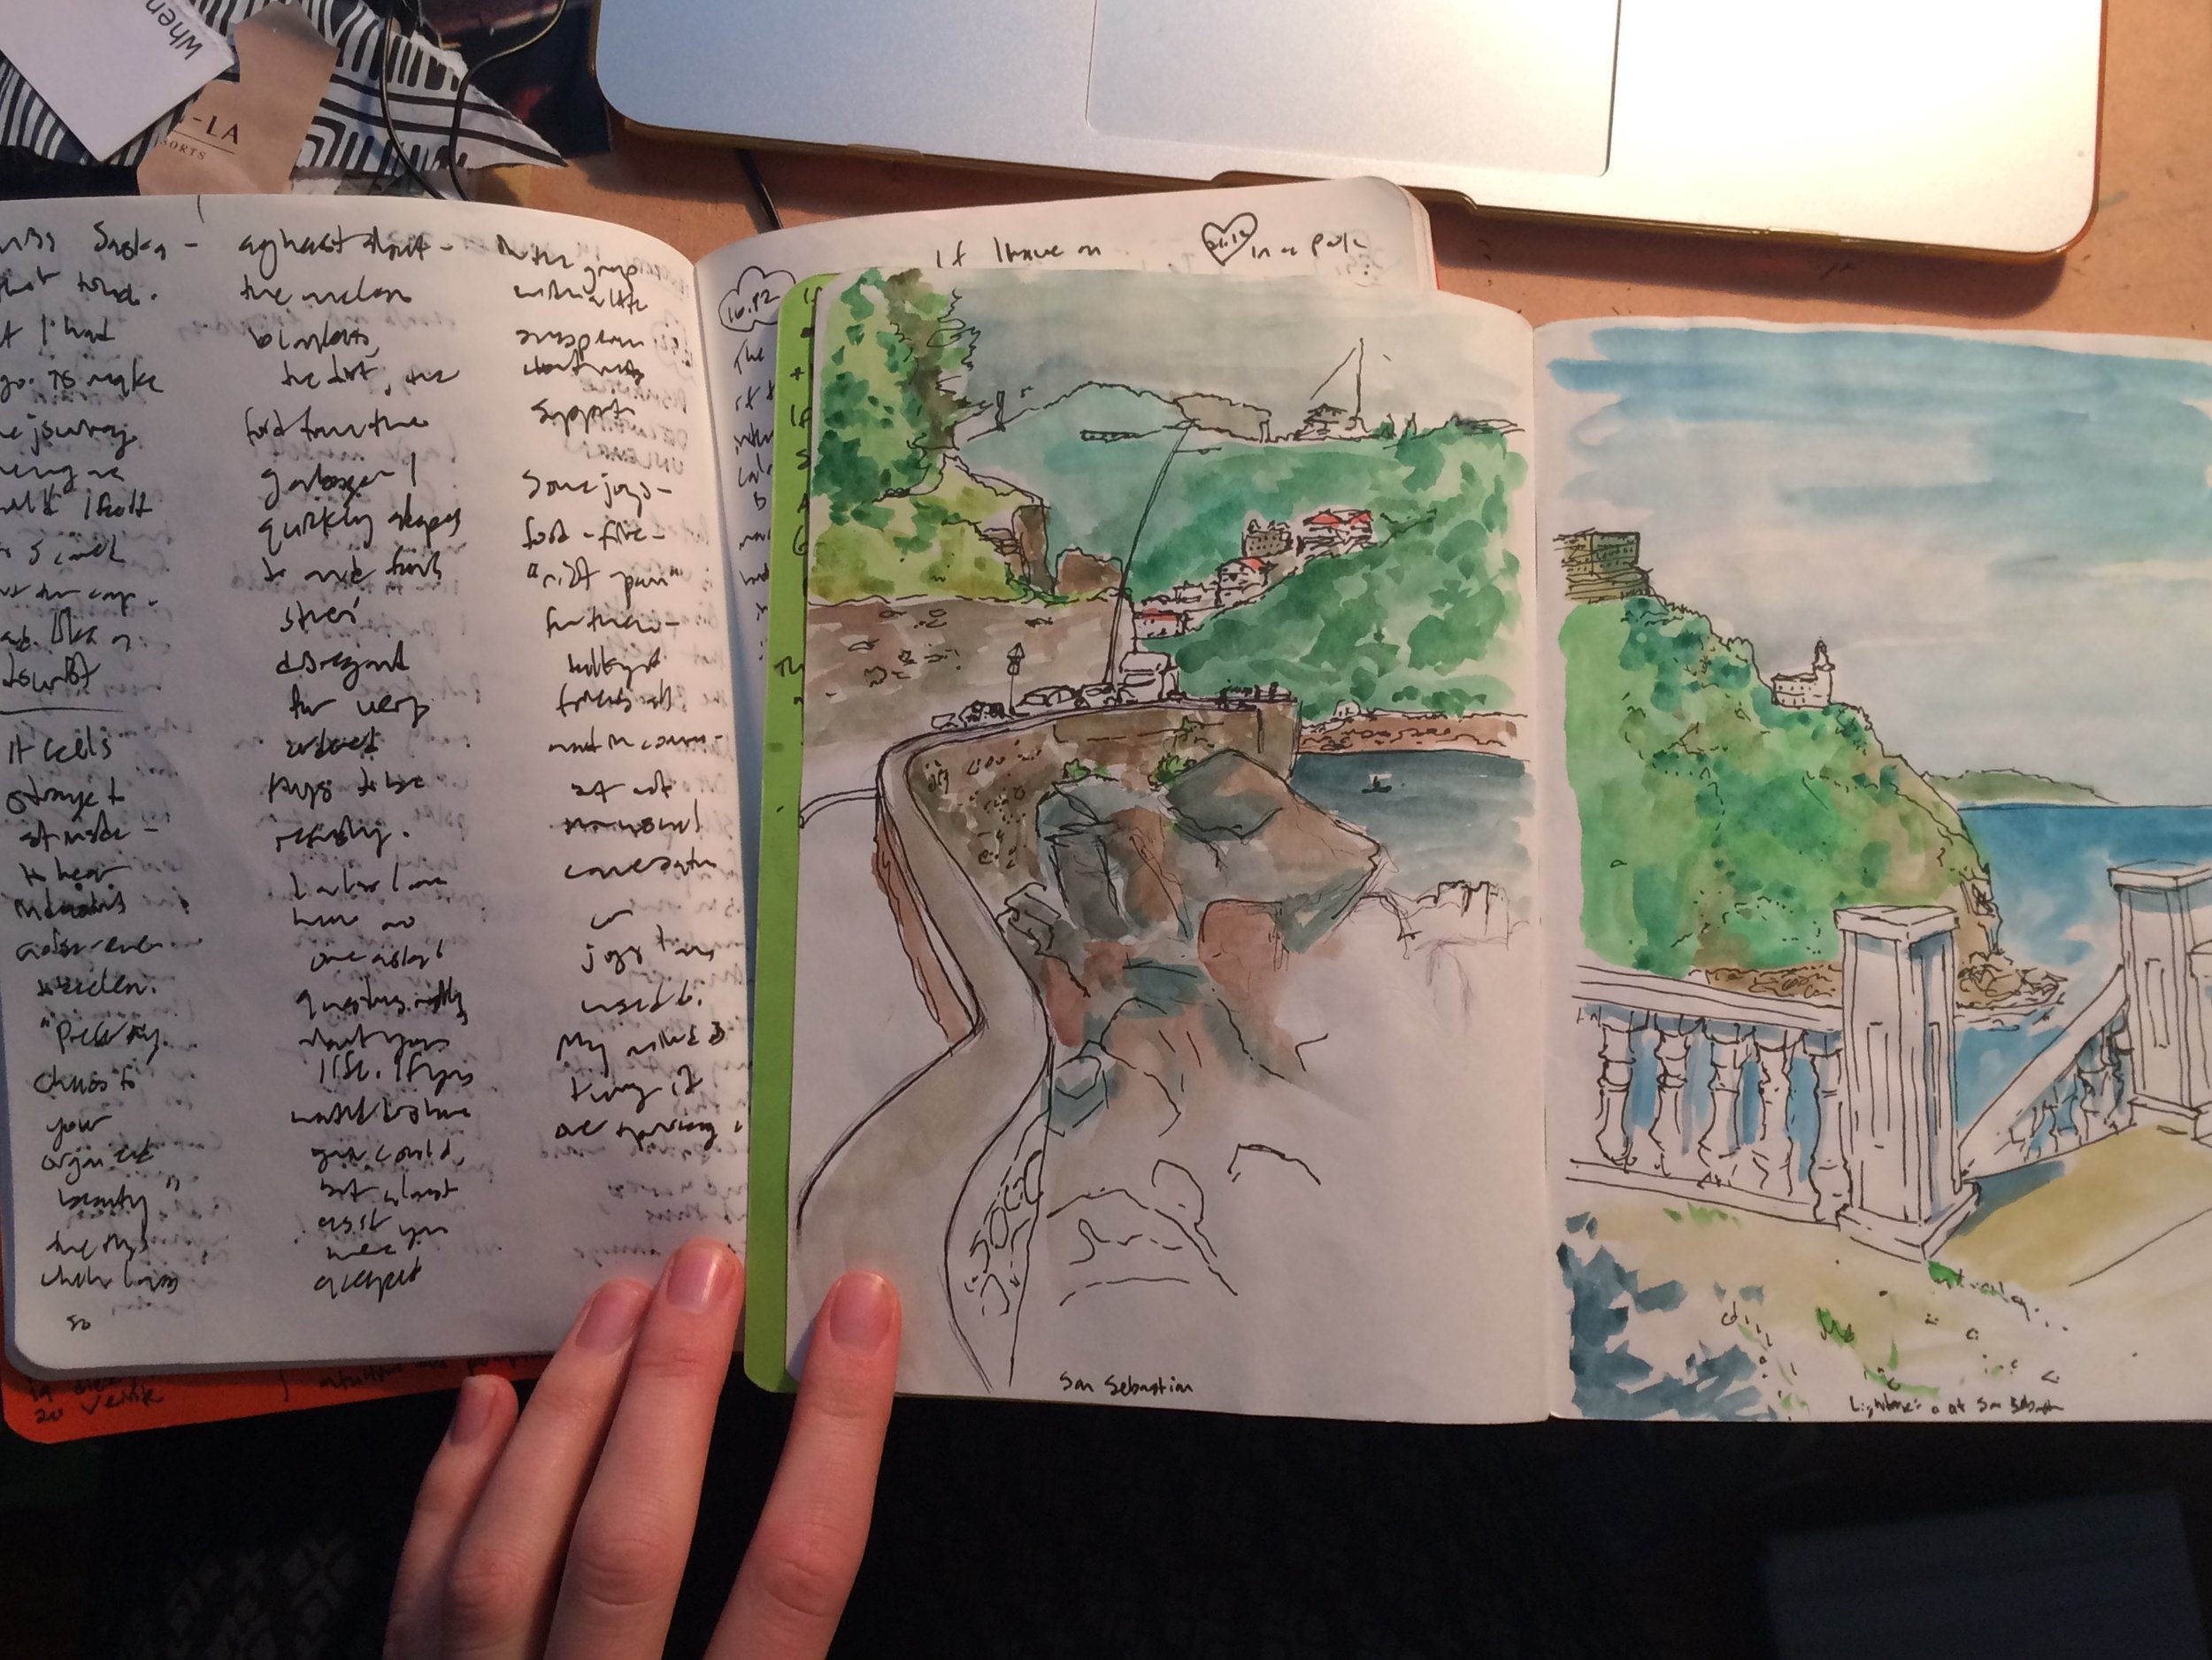 Scribbly and sketchy: journal and sketchbook from my Camino de Santiago trip this past summer.